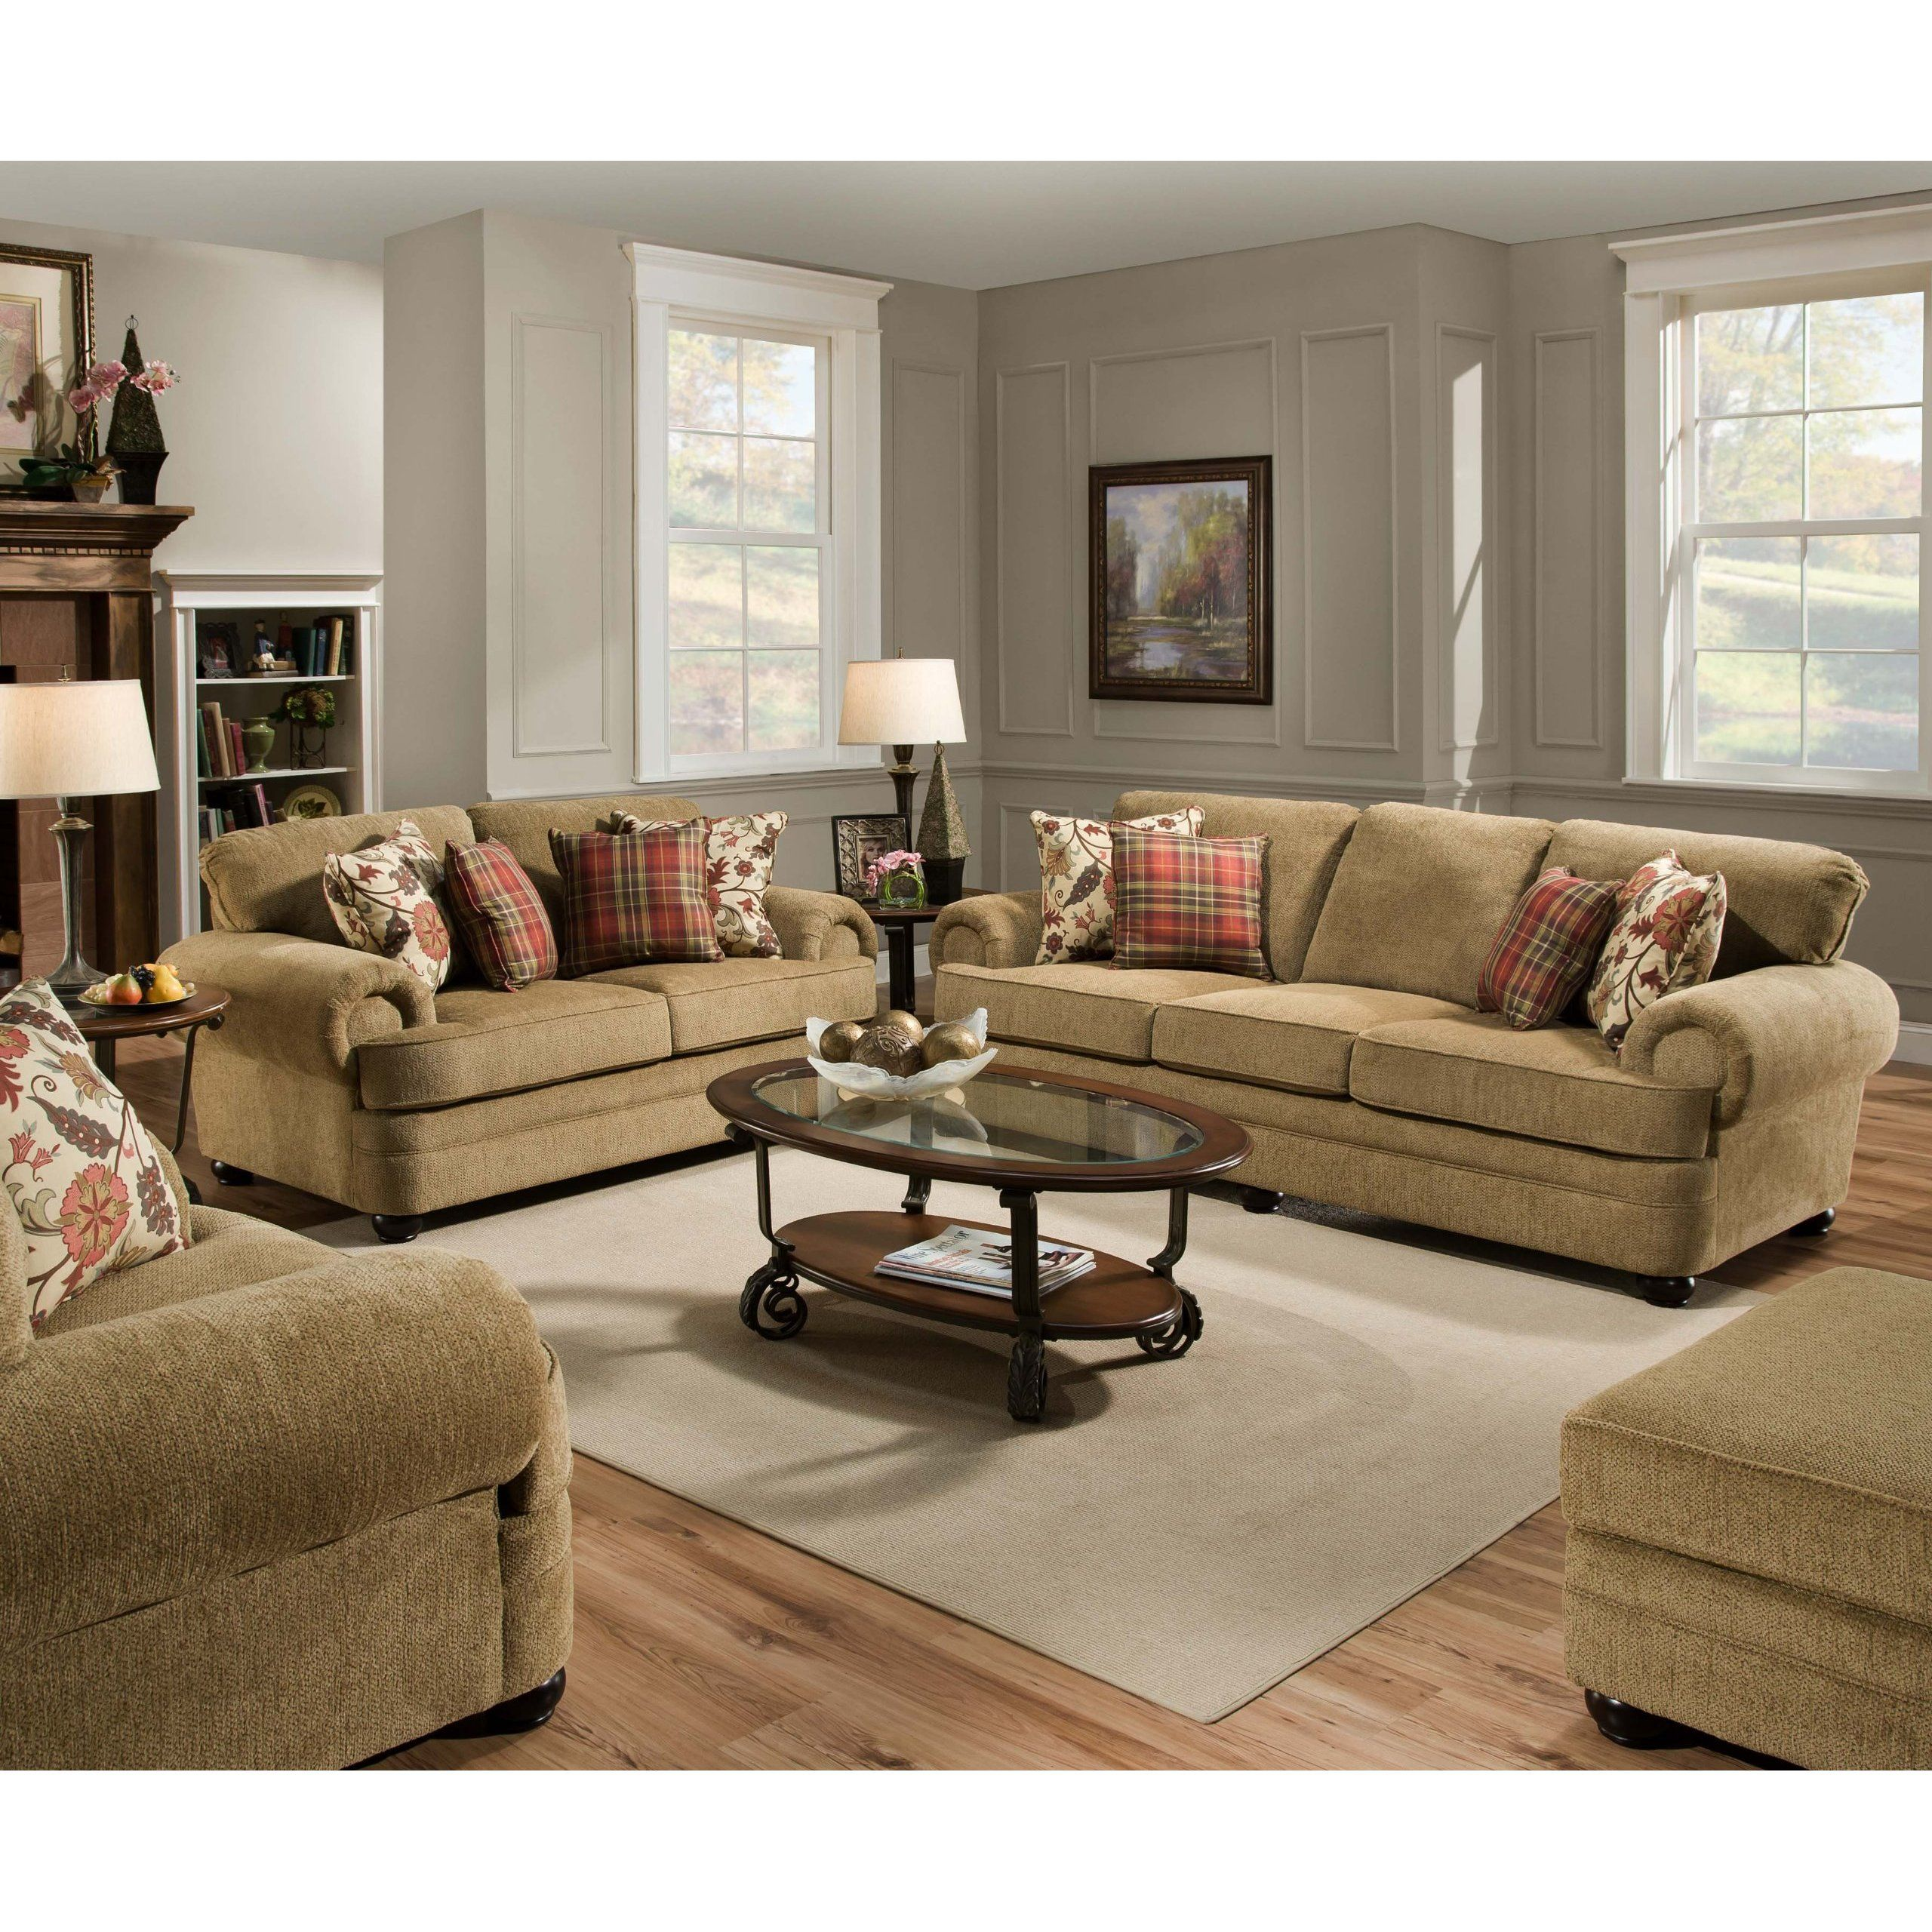 What Time Does American Freight Furniture Open: FurnitureMaxx Thunder Topaz Tan Sofa W/ 4 Pillows : Sofas